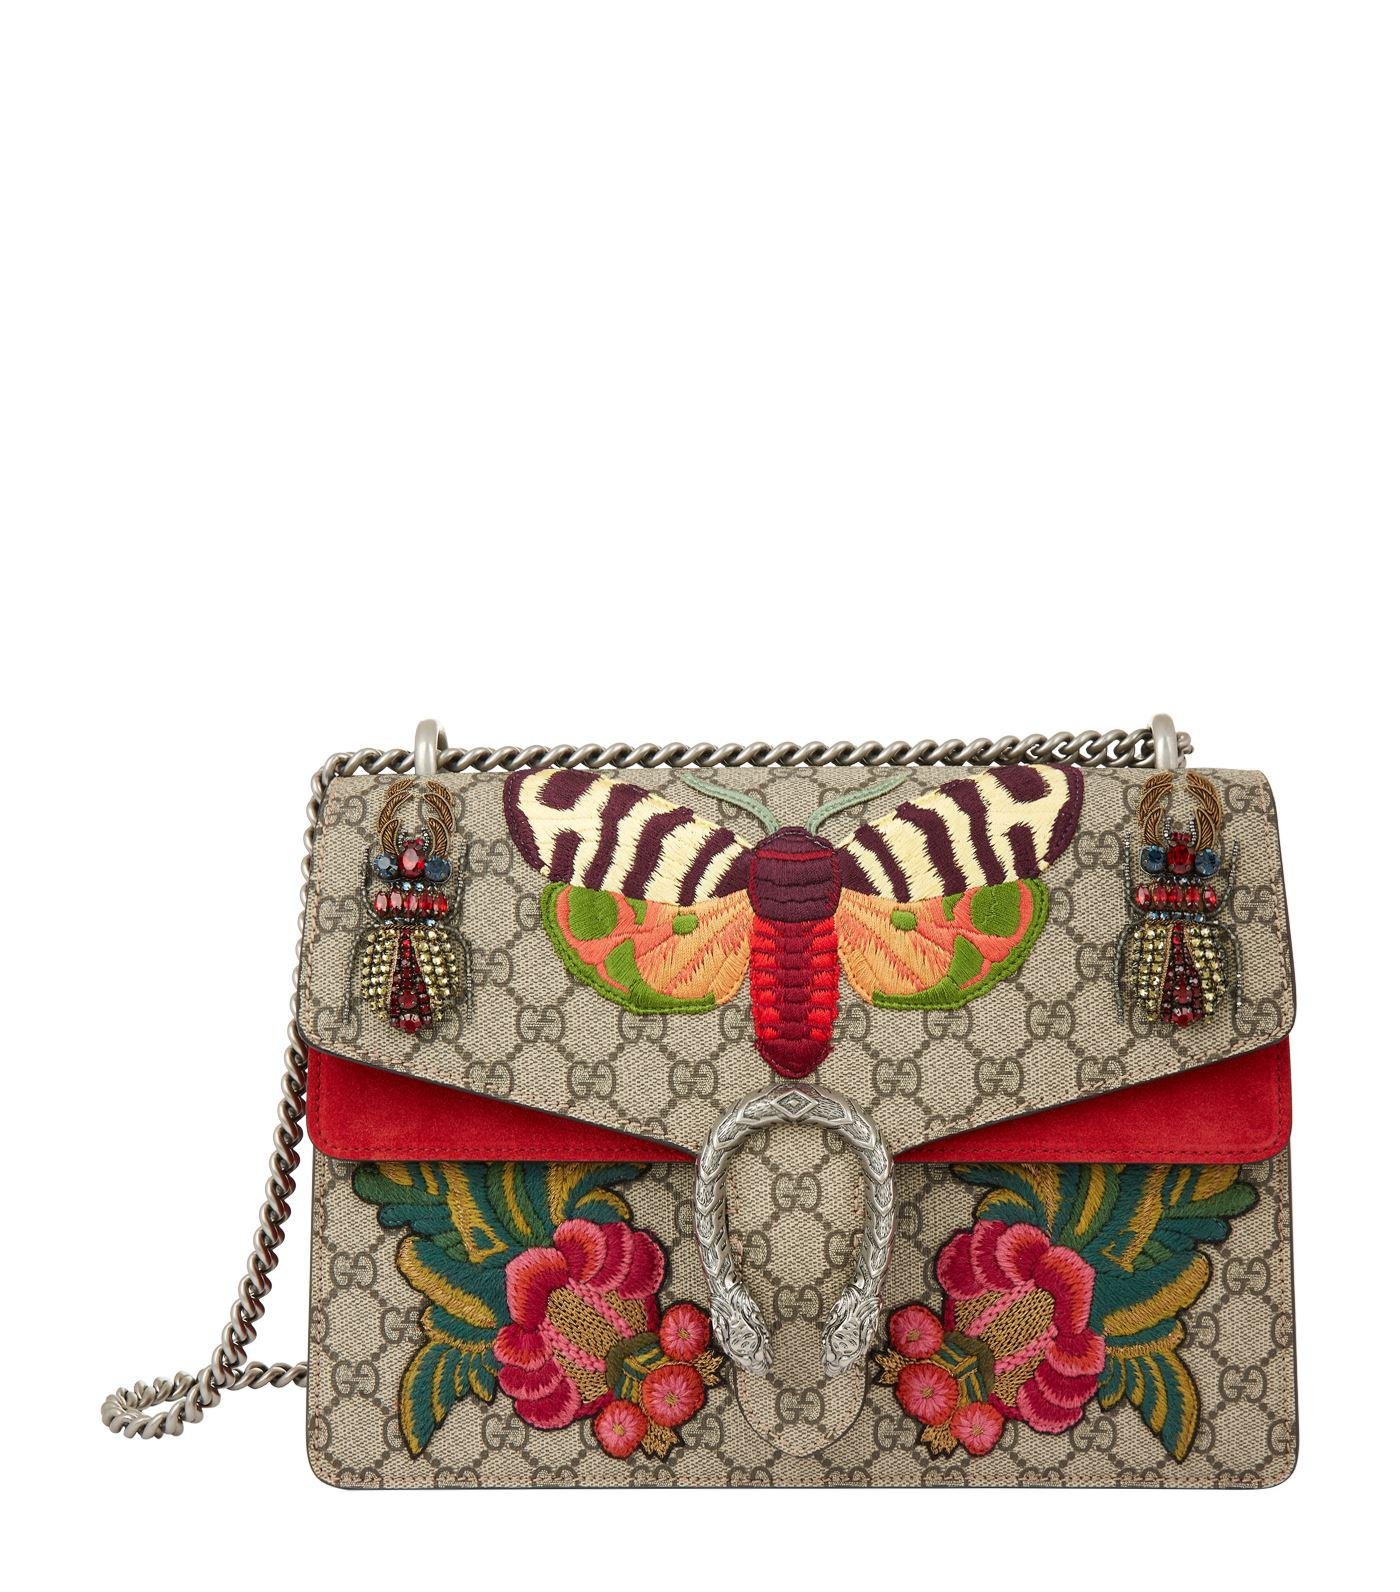 c4a2cd8adbf Lyst - Gucci Large Dionysus Butterfly Beetle Bag